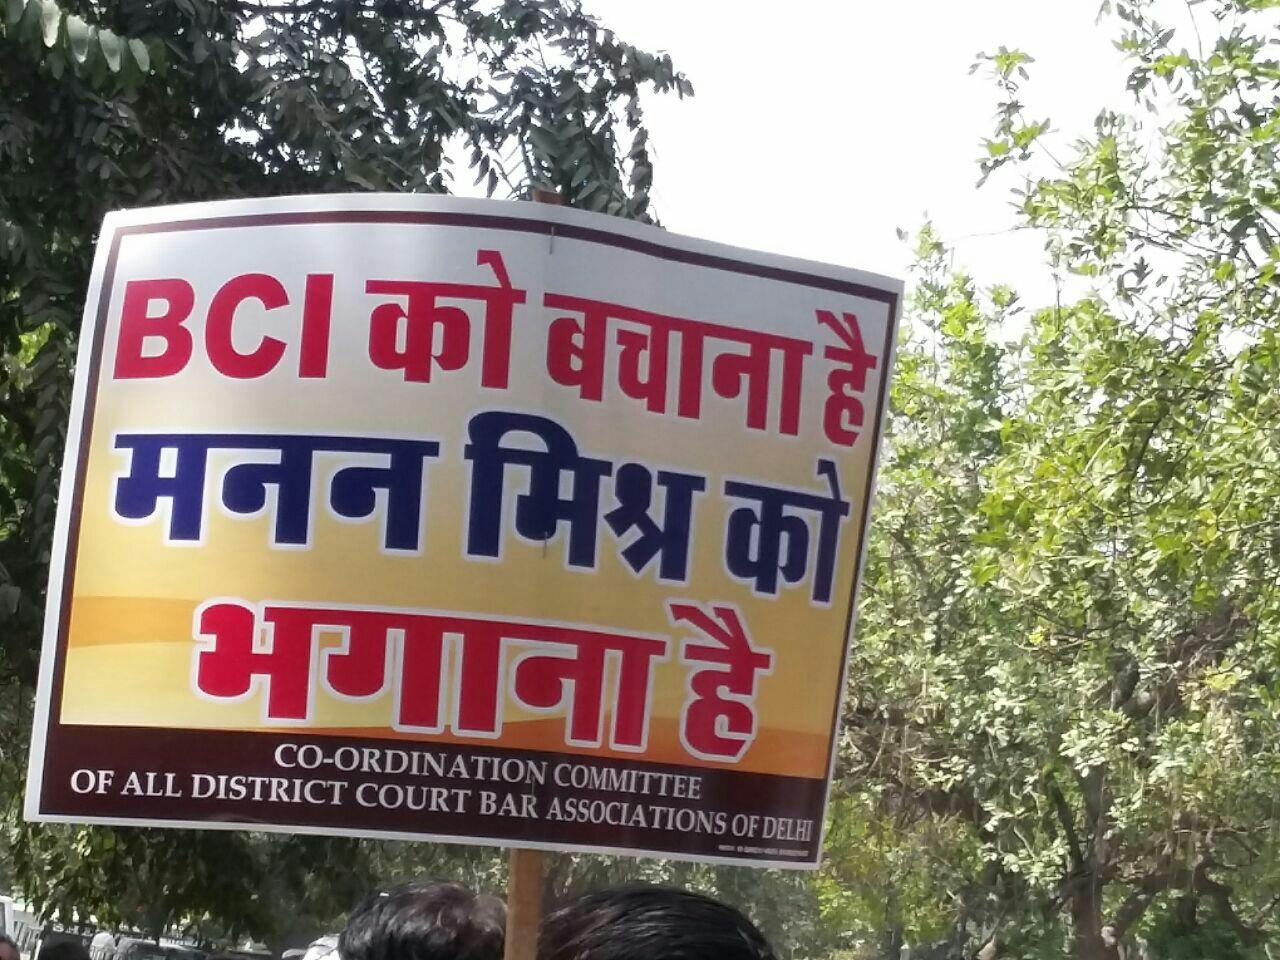 Translation: Have to save the BCI, have to oust Mishra